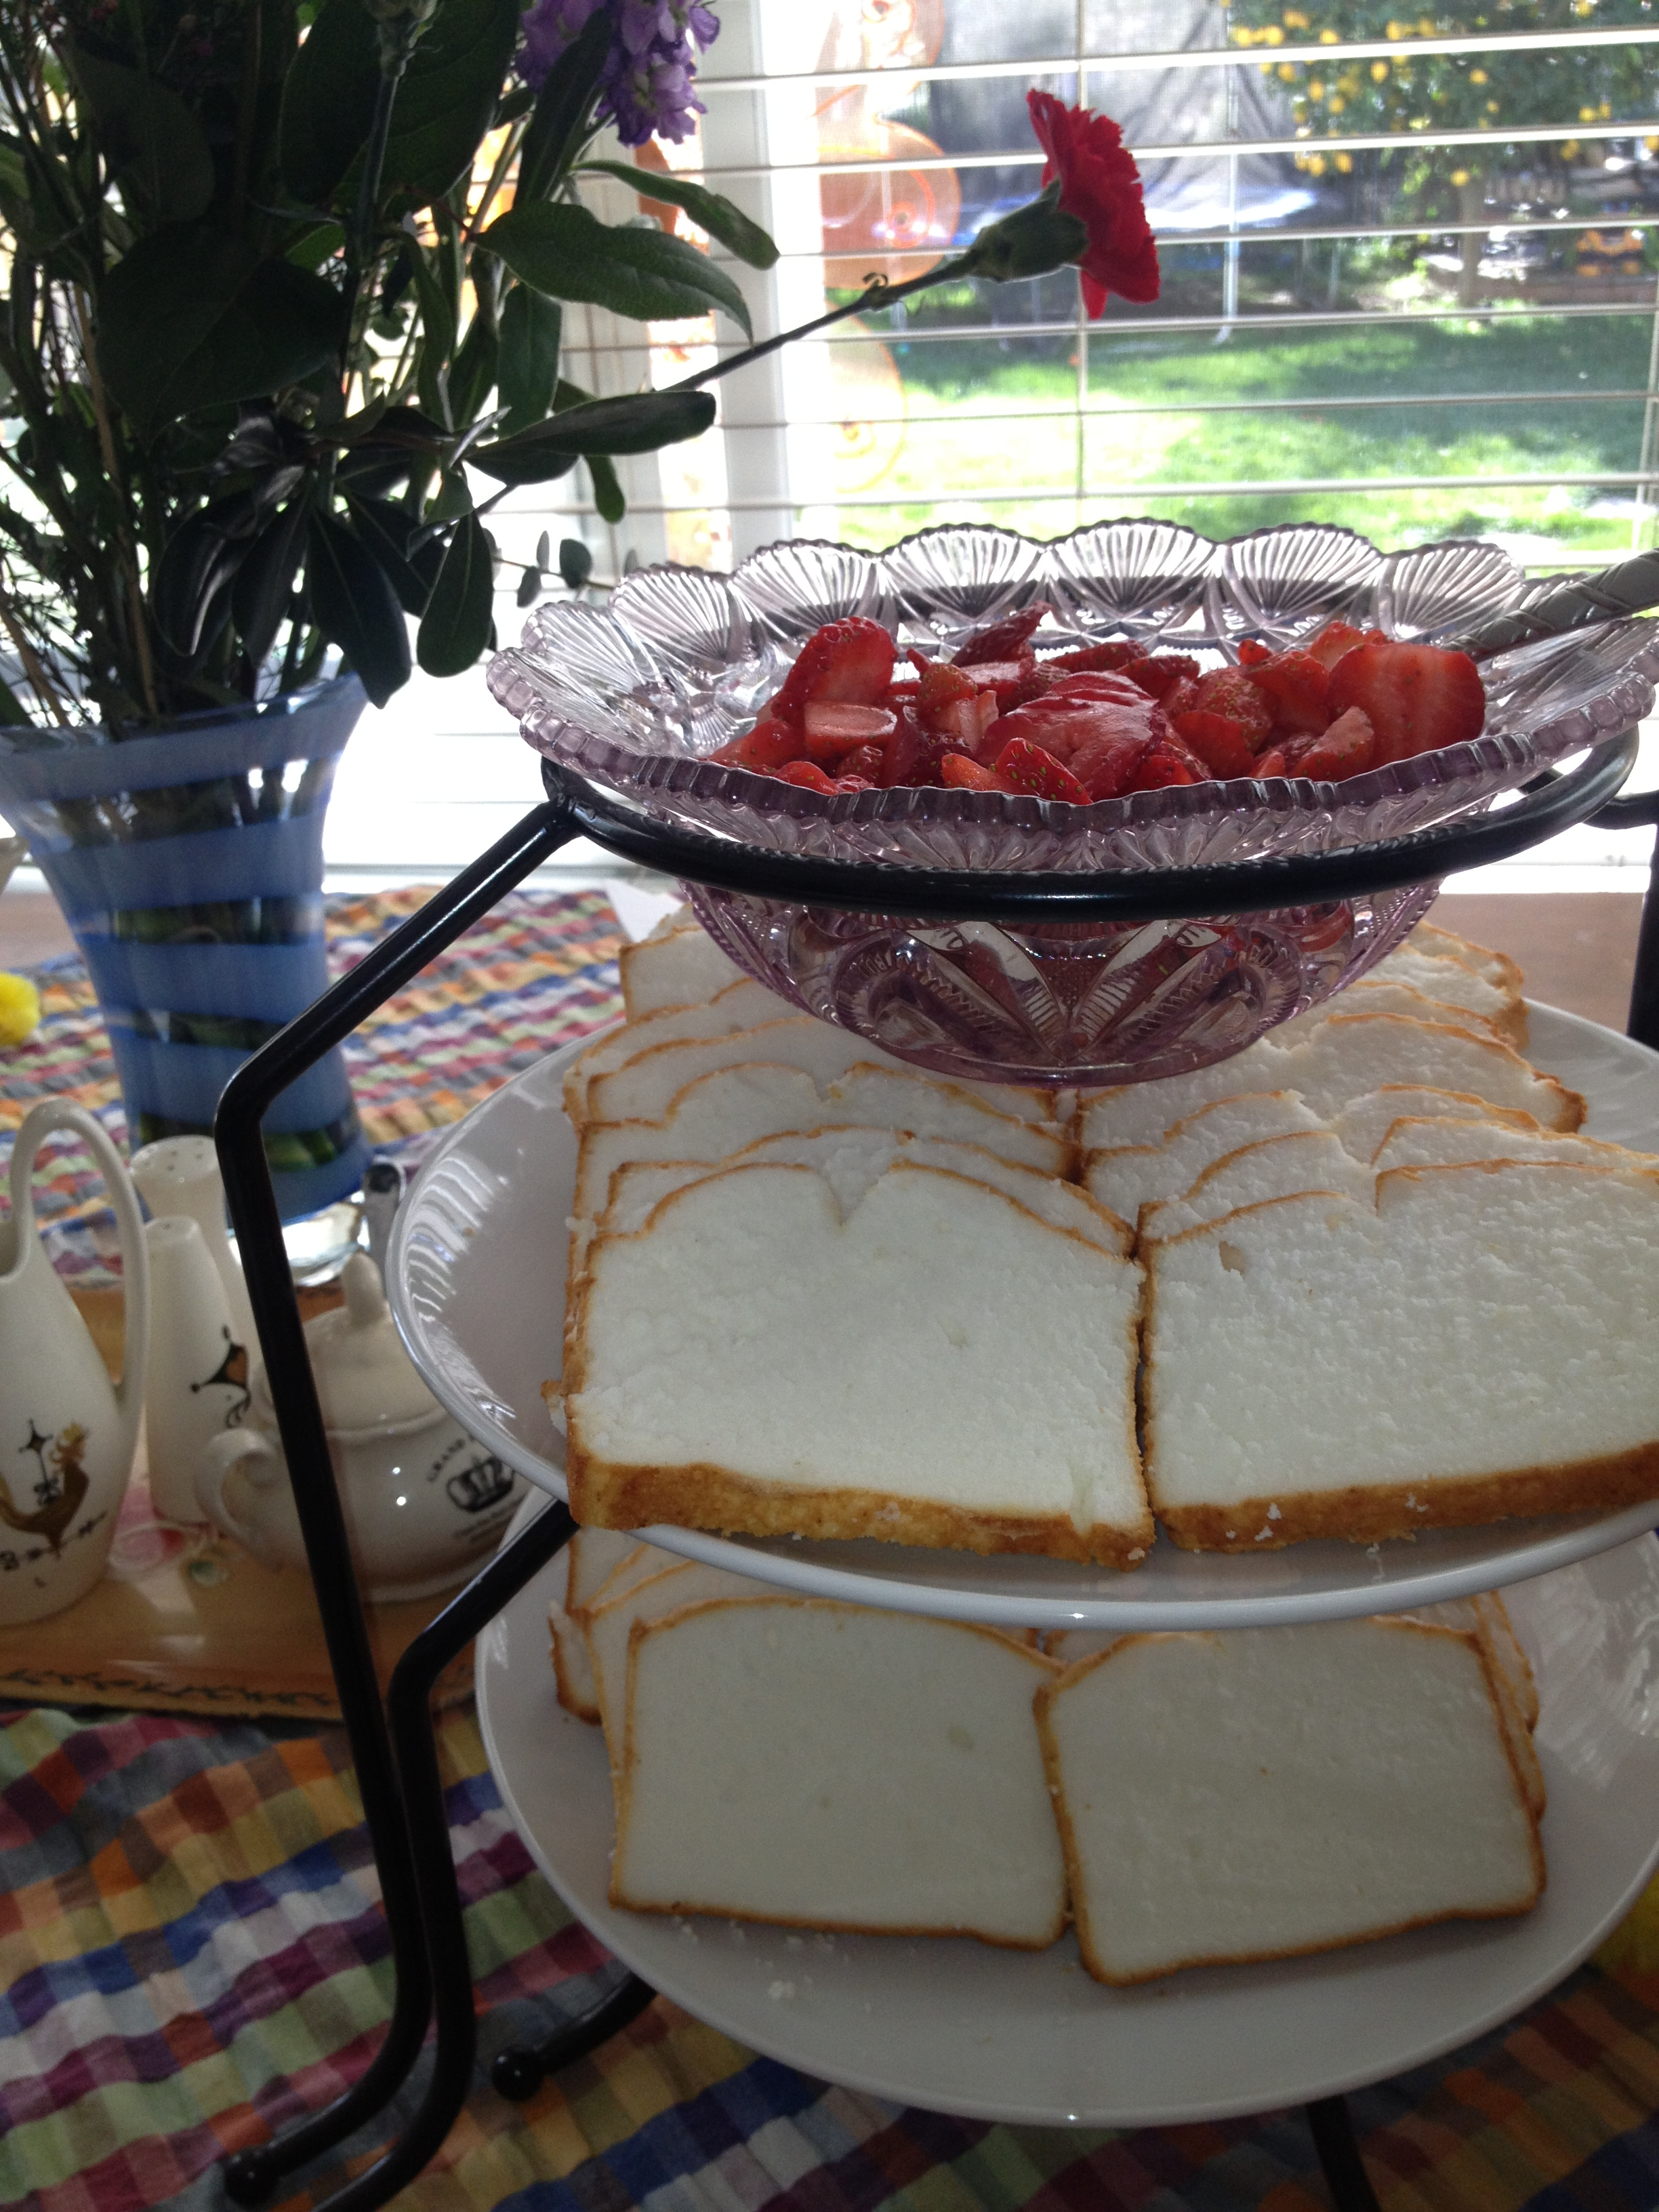 Strawberries and pound cake -- served in Grandma's glass bowls...